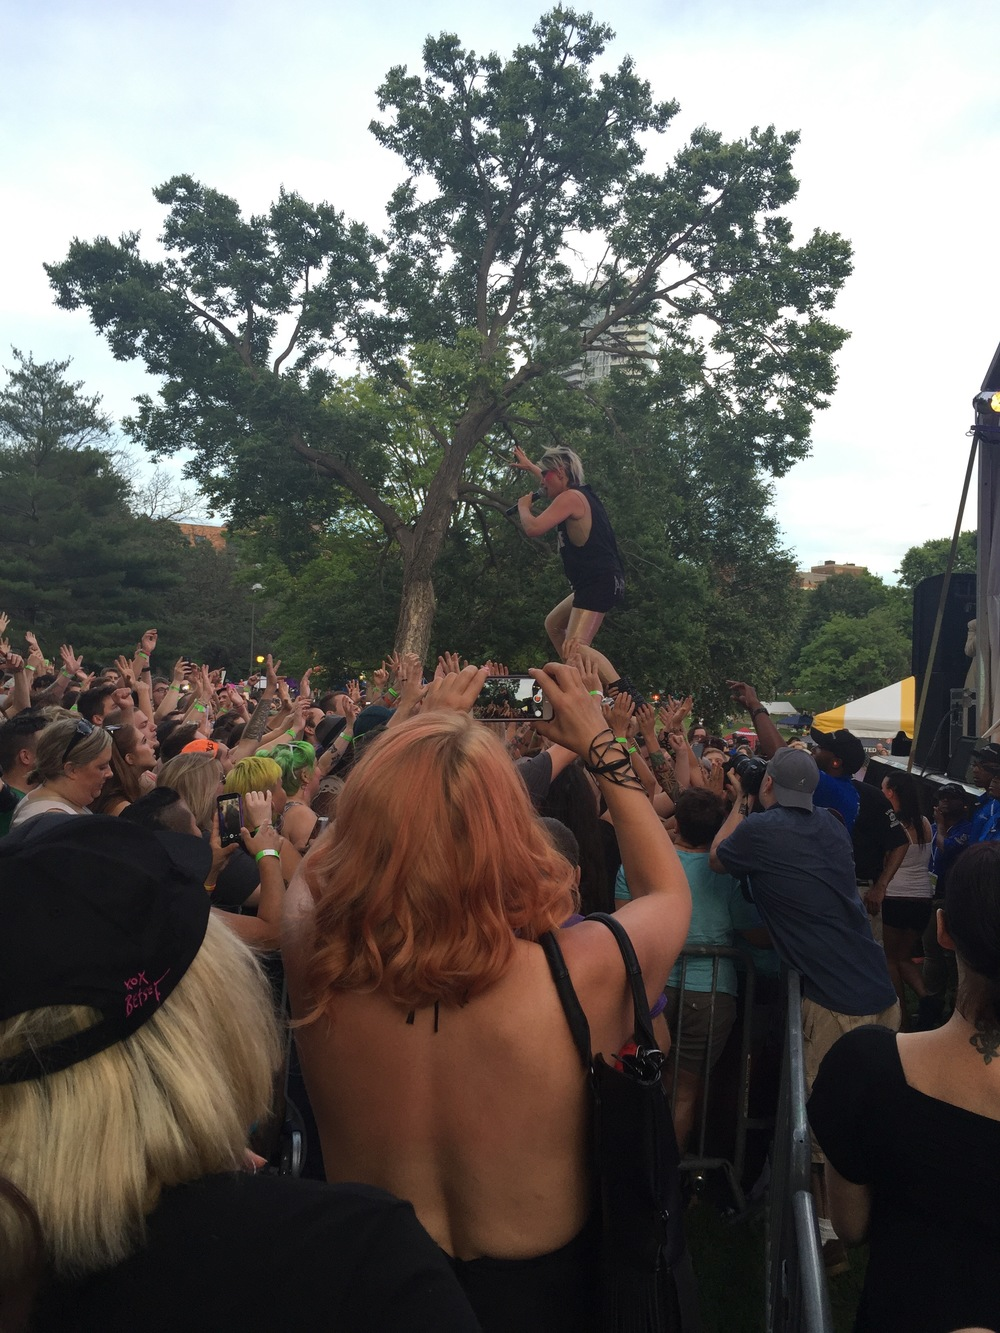 Peaches crowdwalking. That's right, she WALKED on their hands!